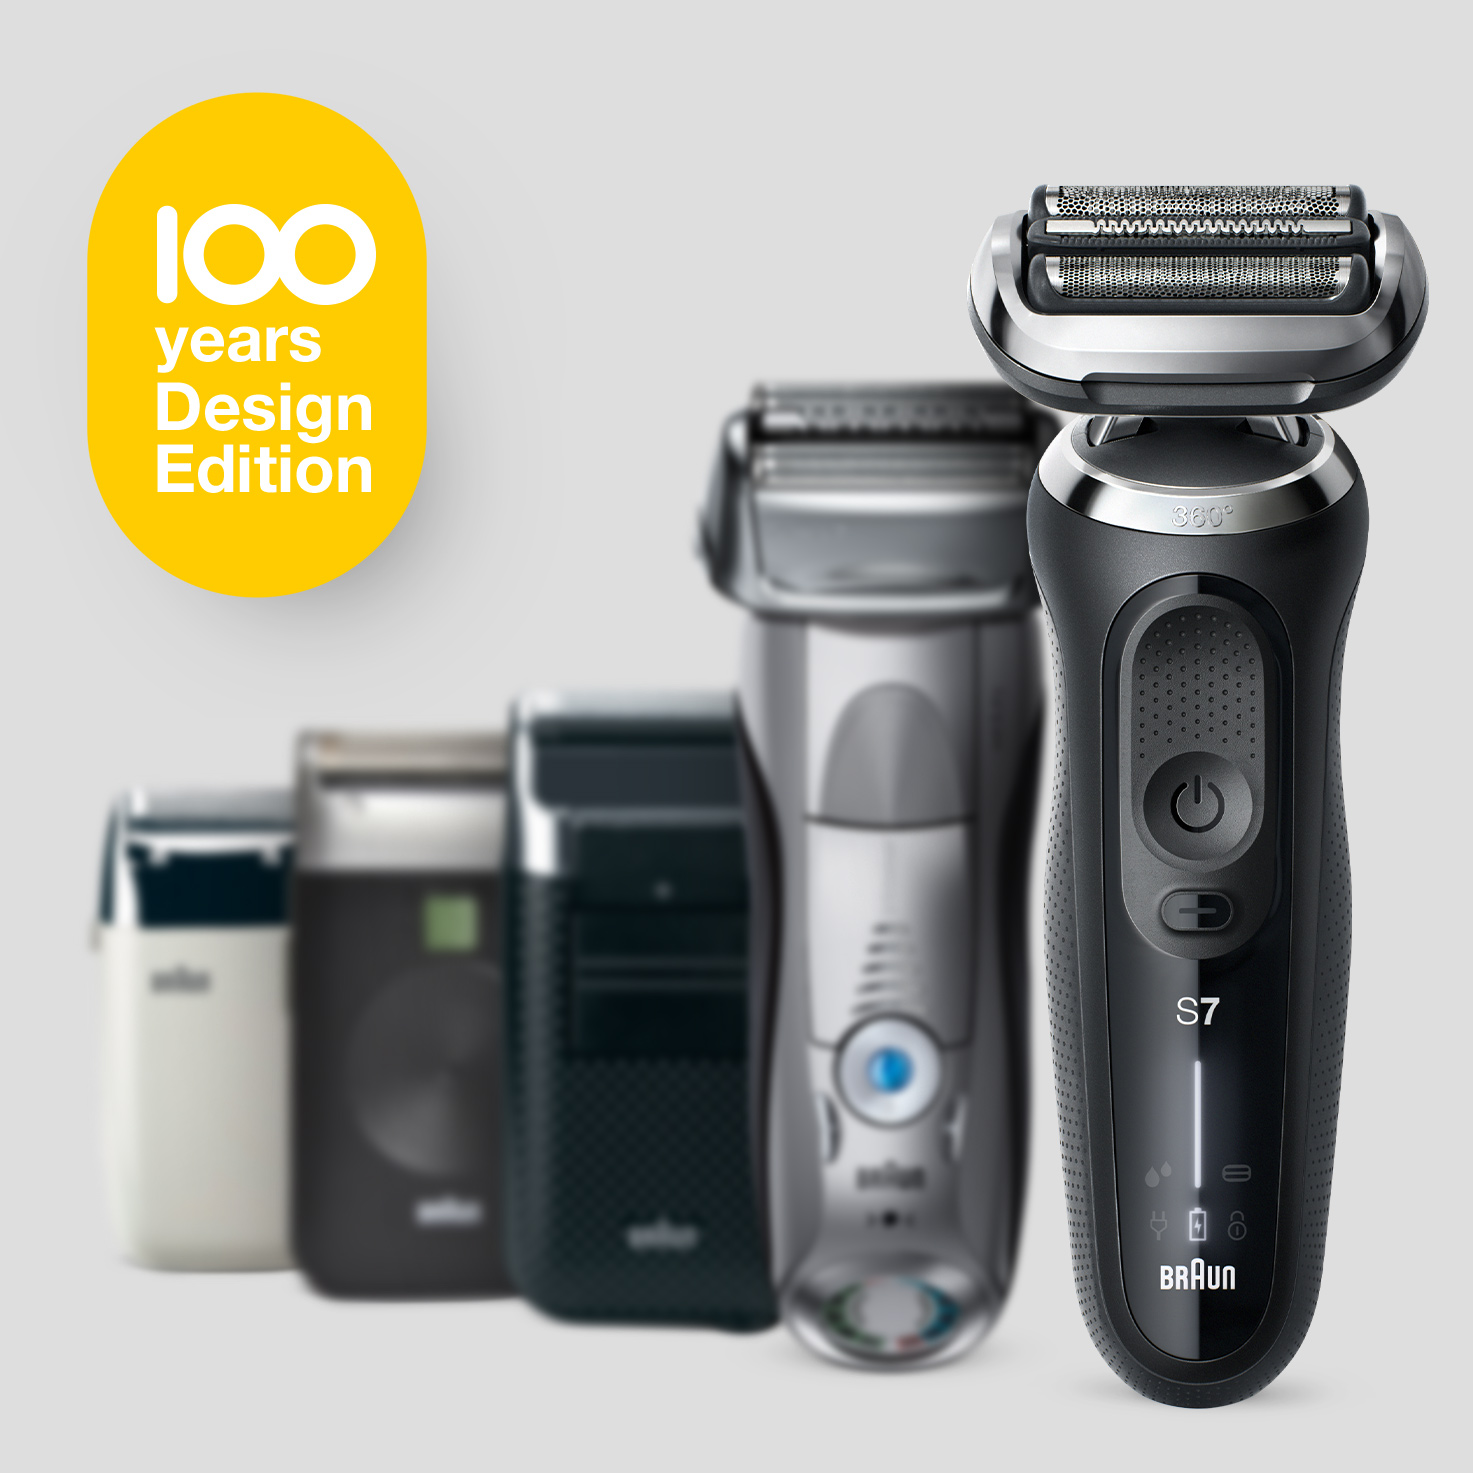 Braun Series 7 70 Electric Shaver Design Edition